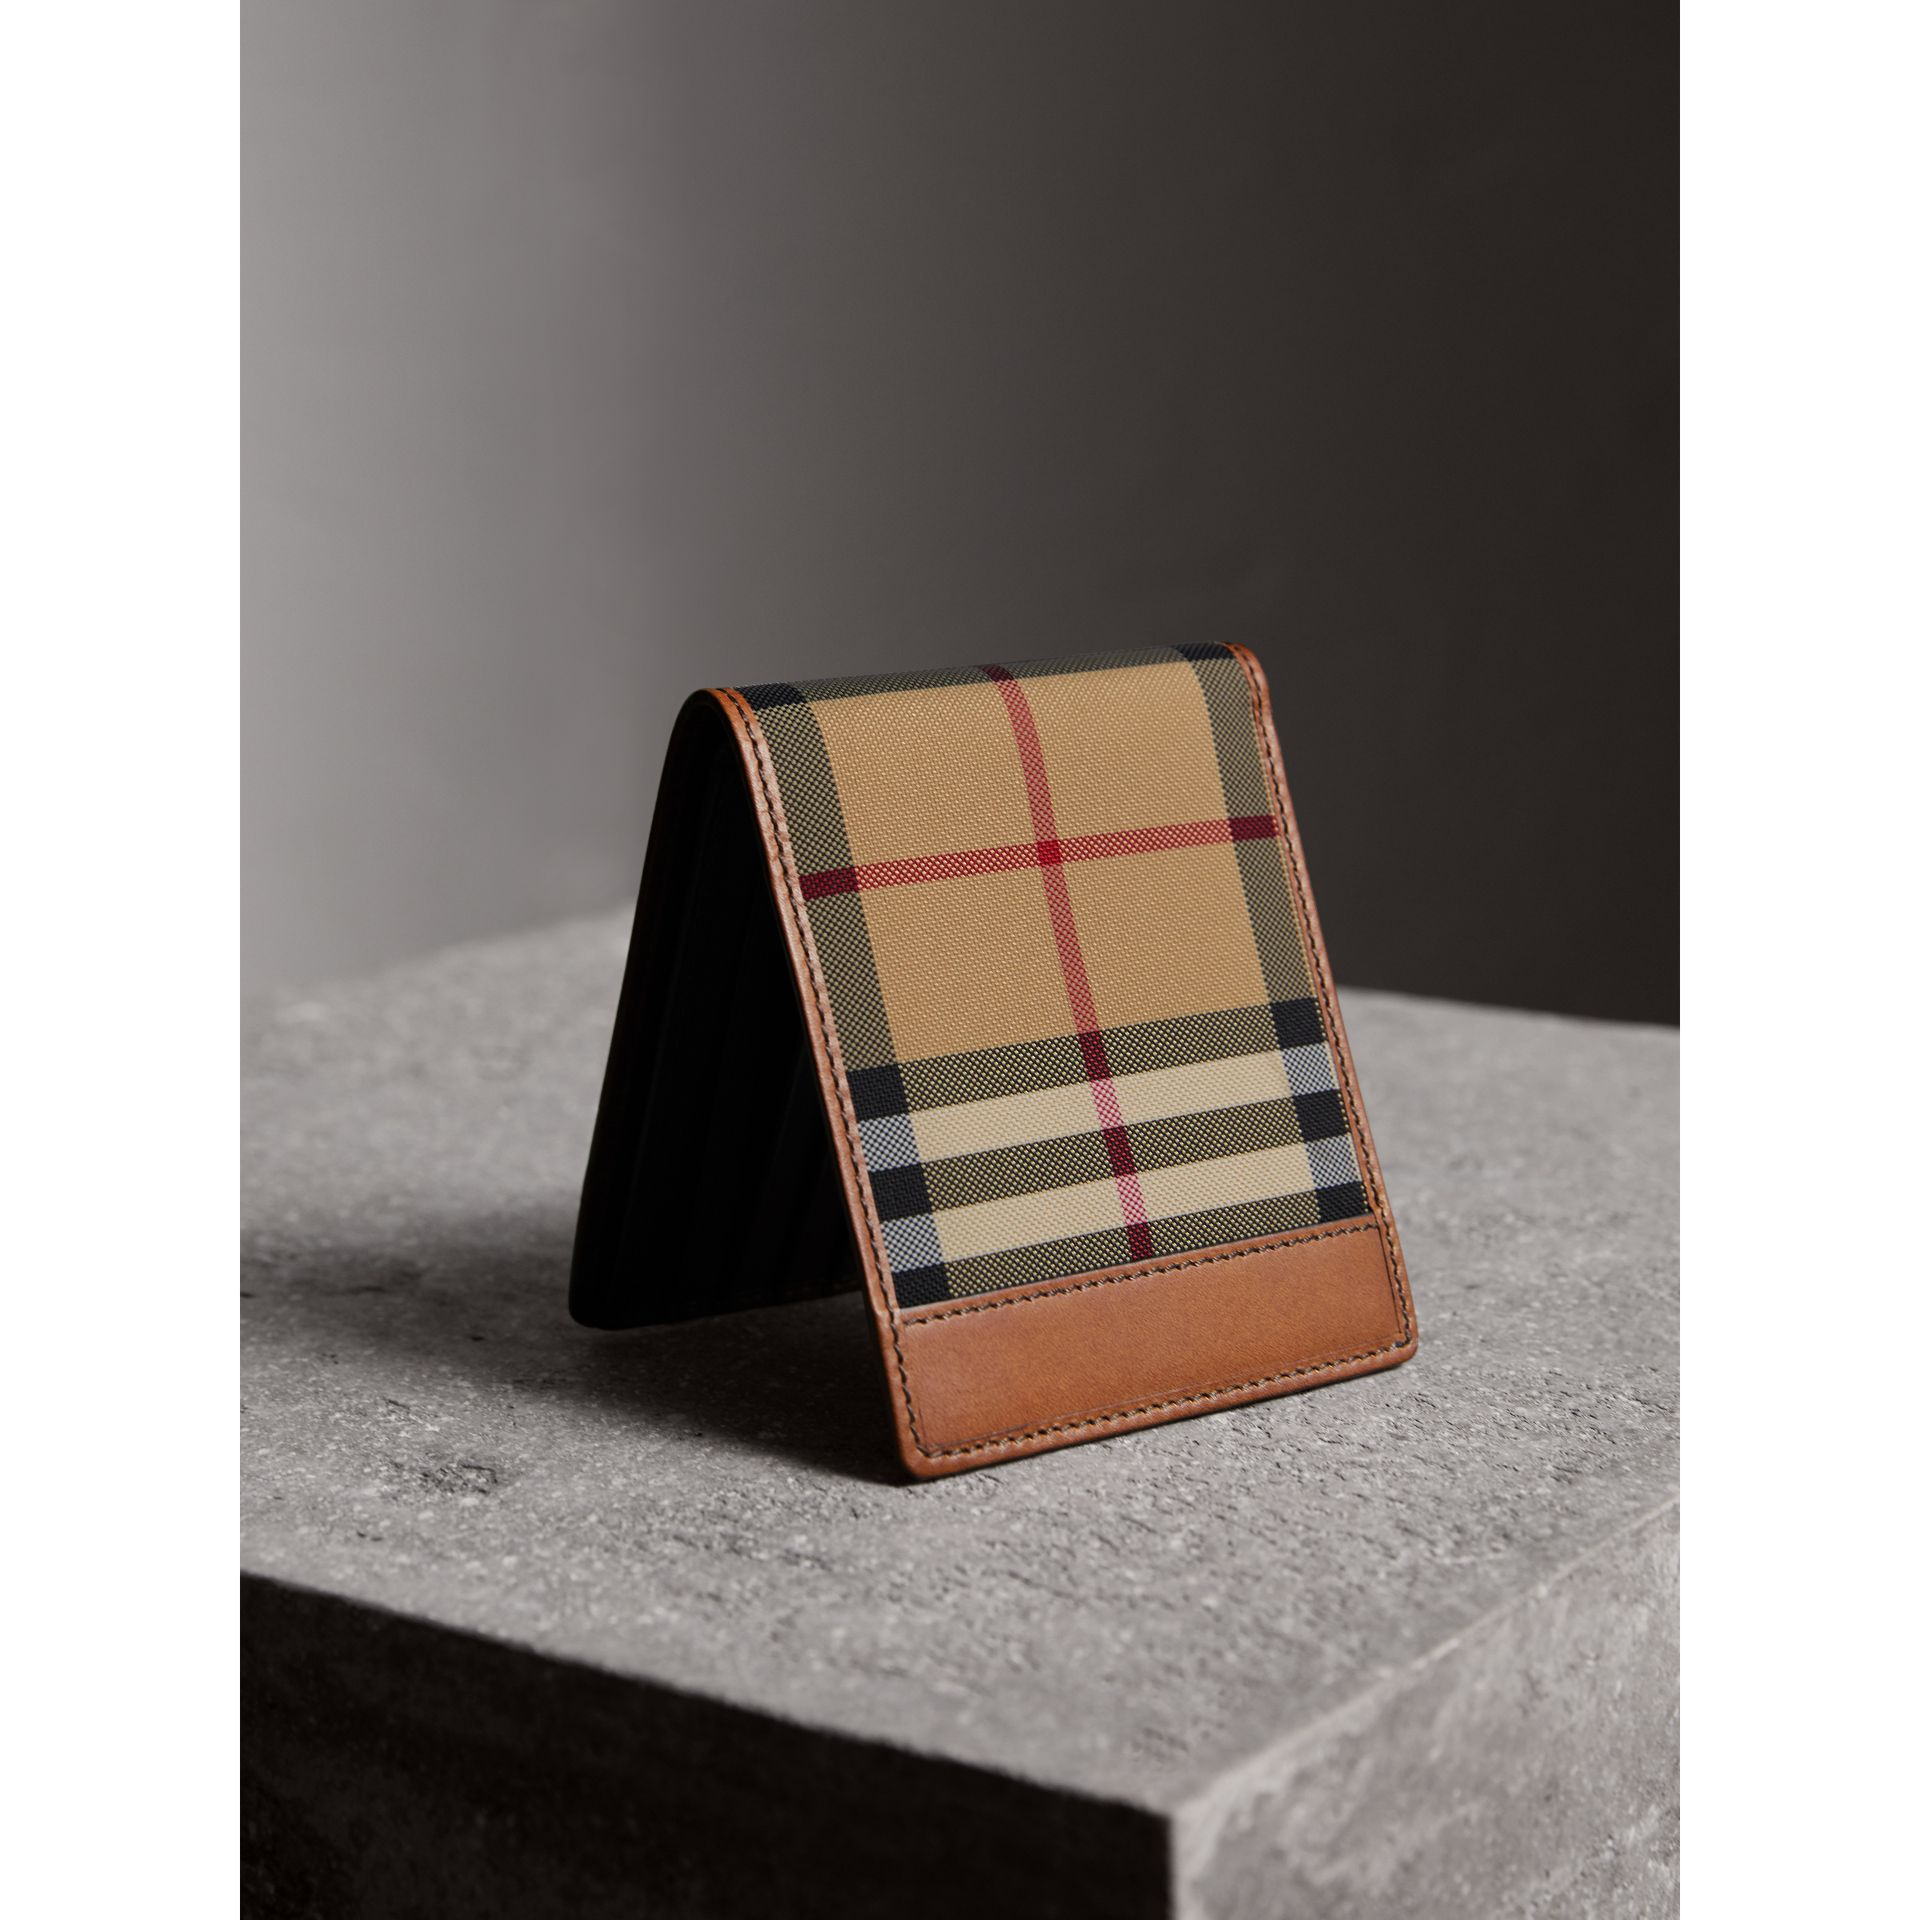 Portefeuille à rabat multidevise avec motif Horseferry check (Hâle) - Homme | Burberry - photo de la galerie 3